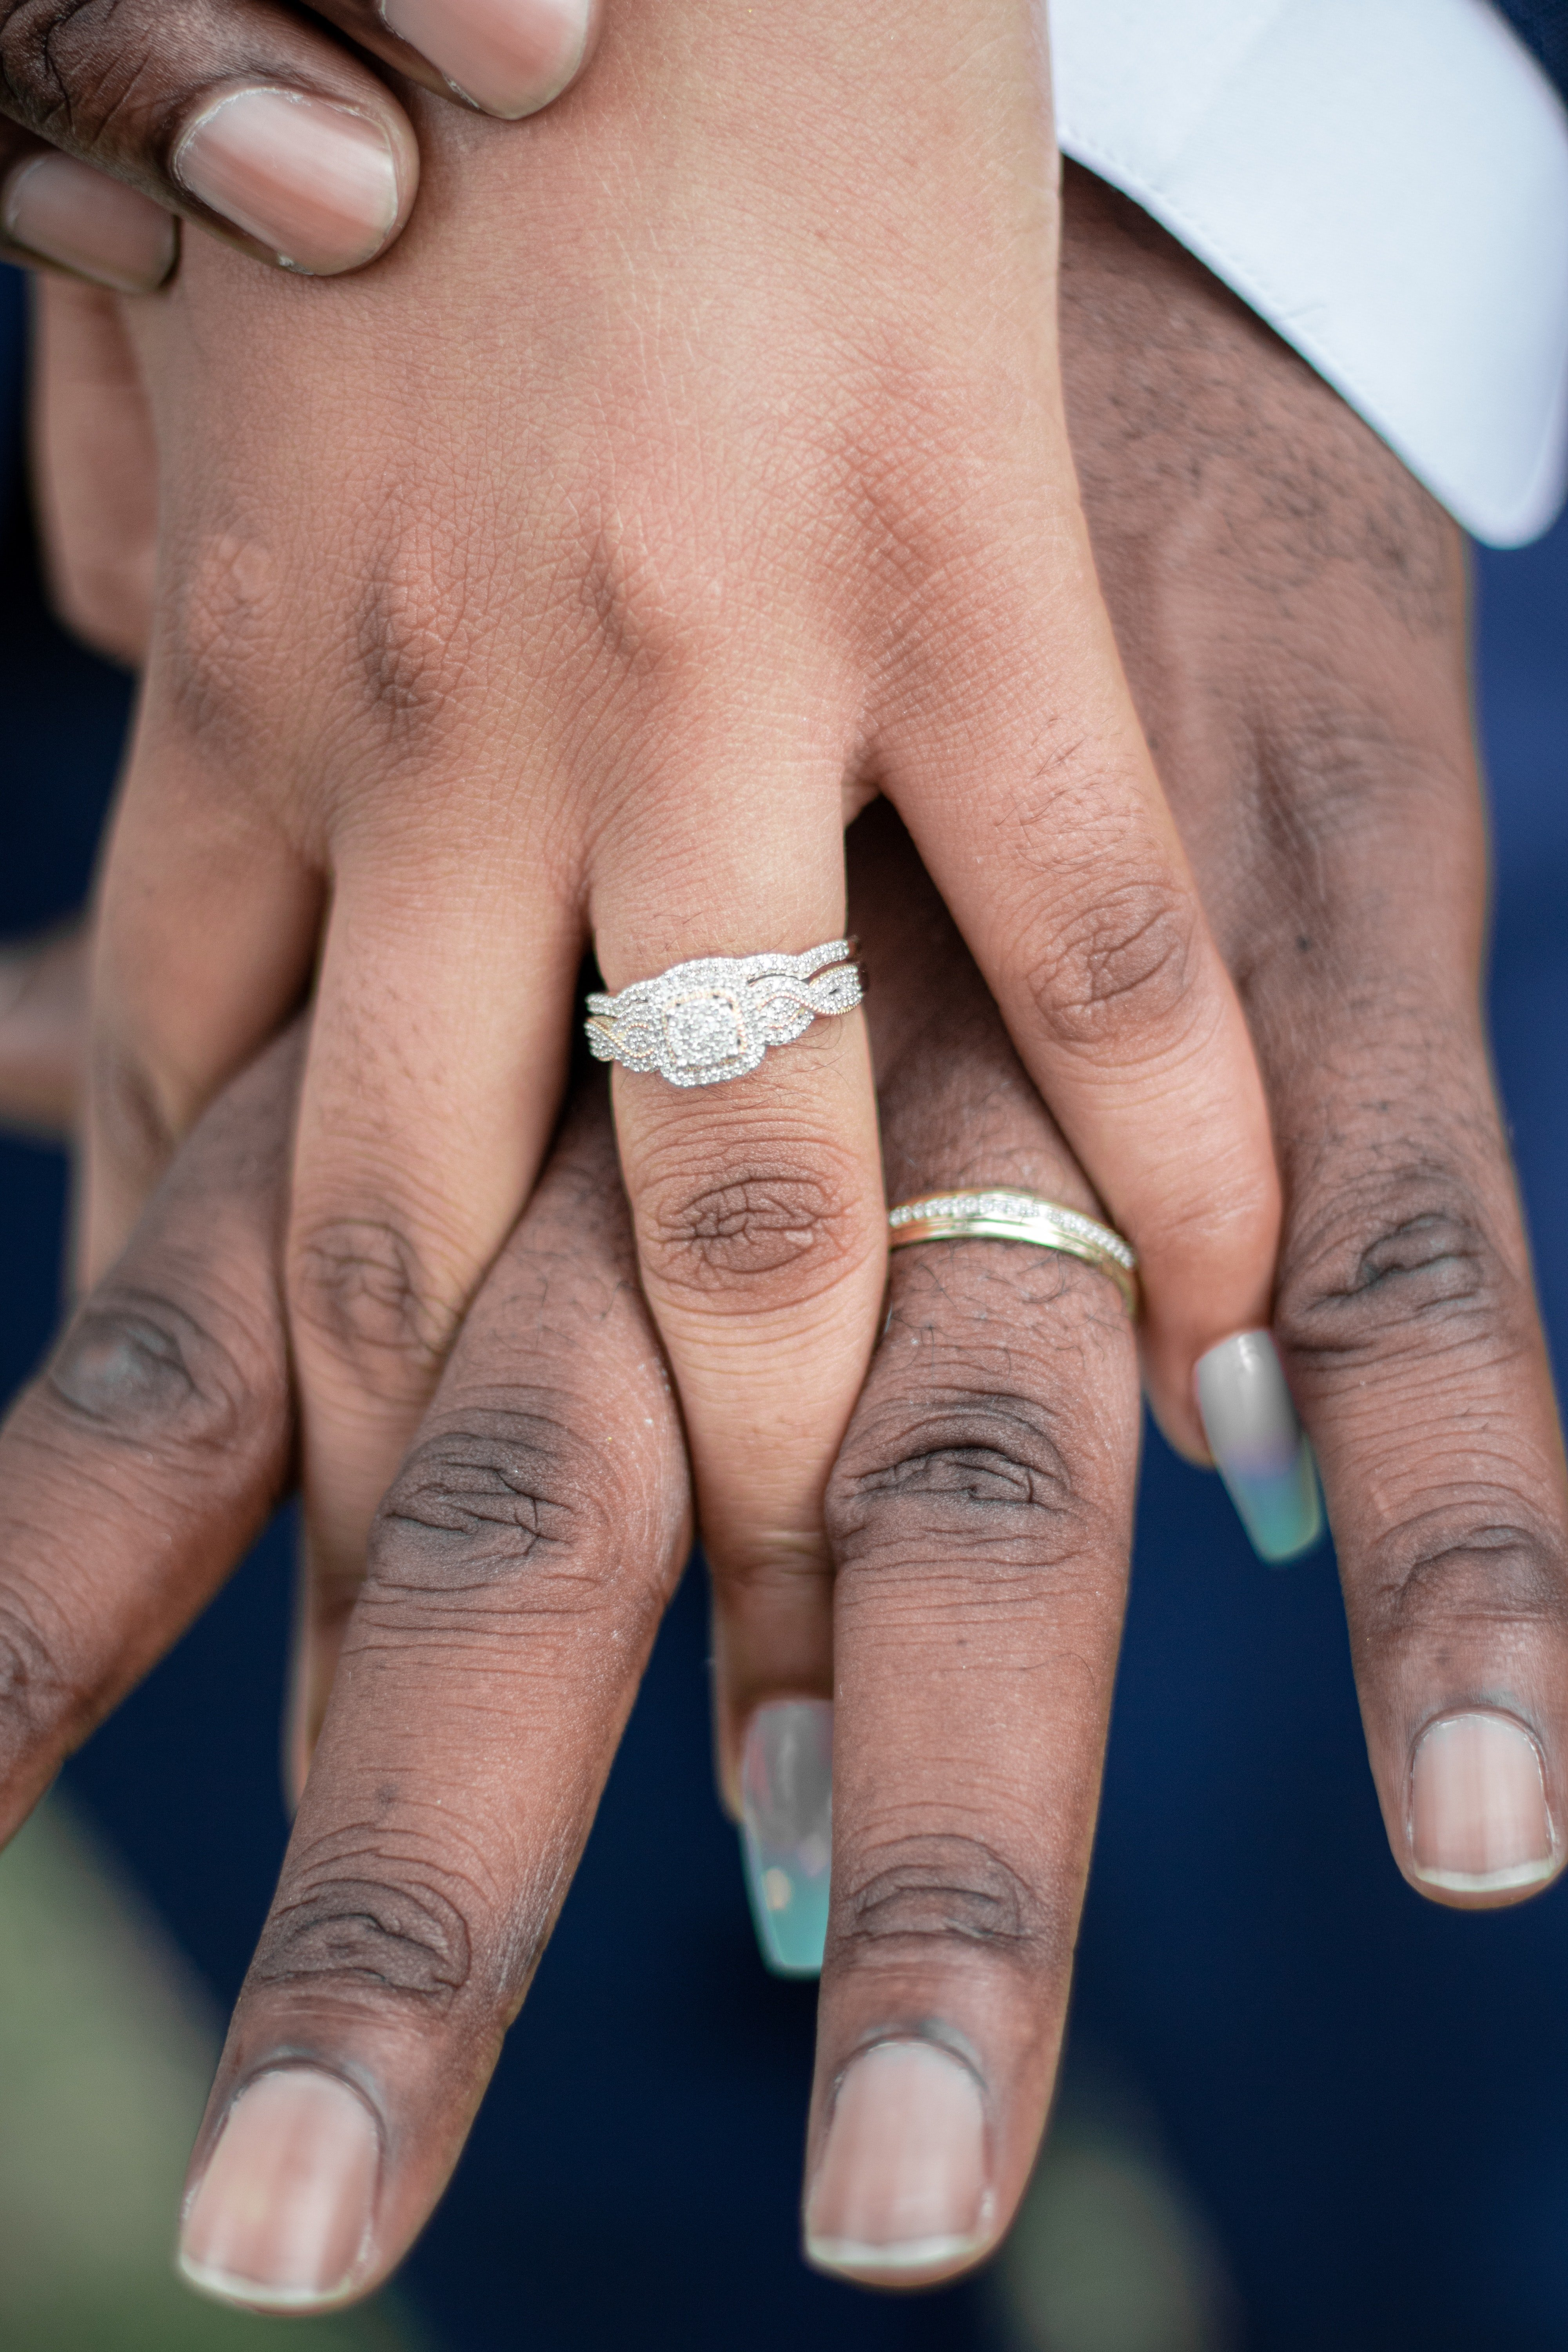 Betsy noticed their wedding rings | Source: Pexels